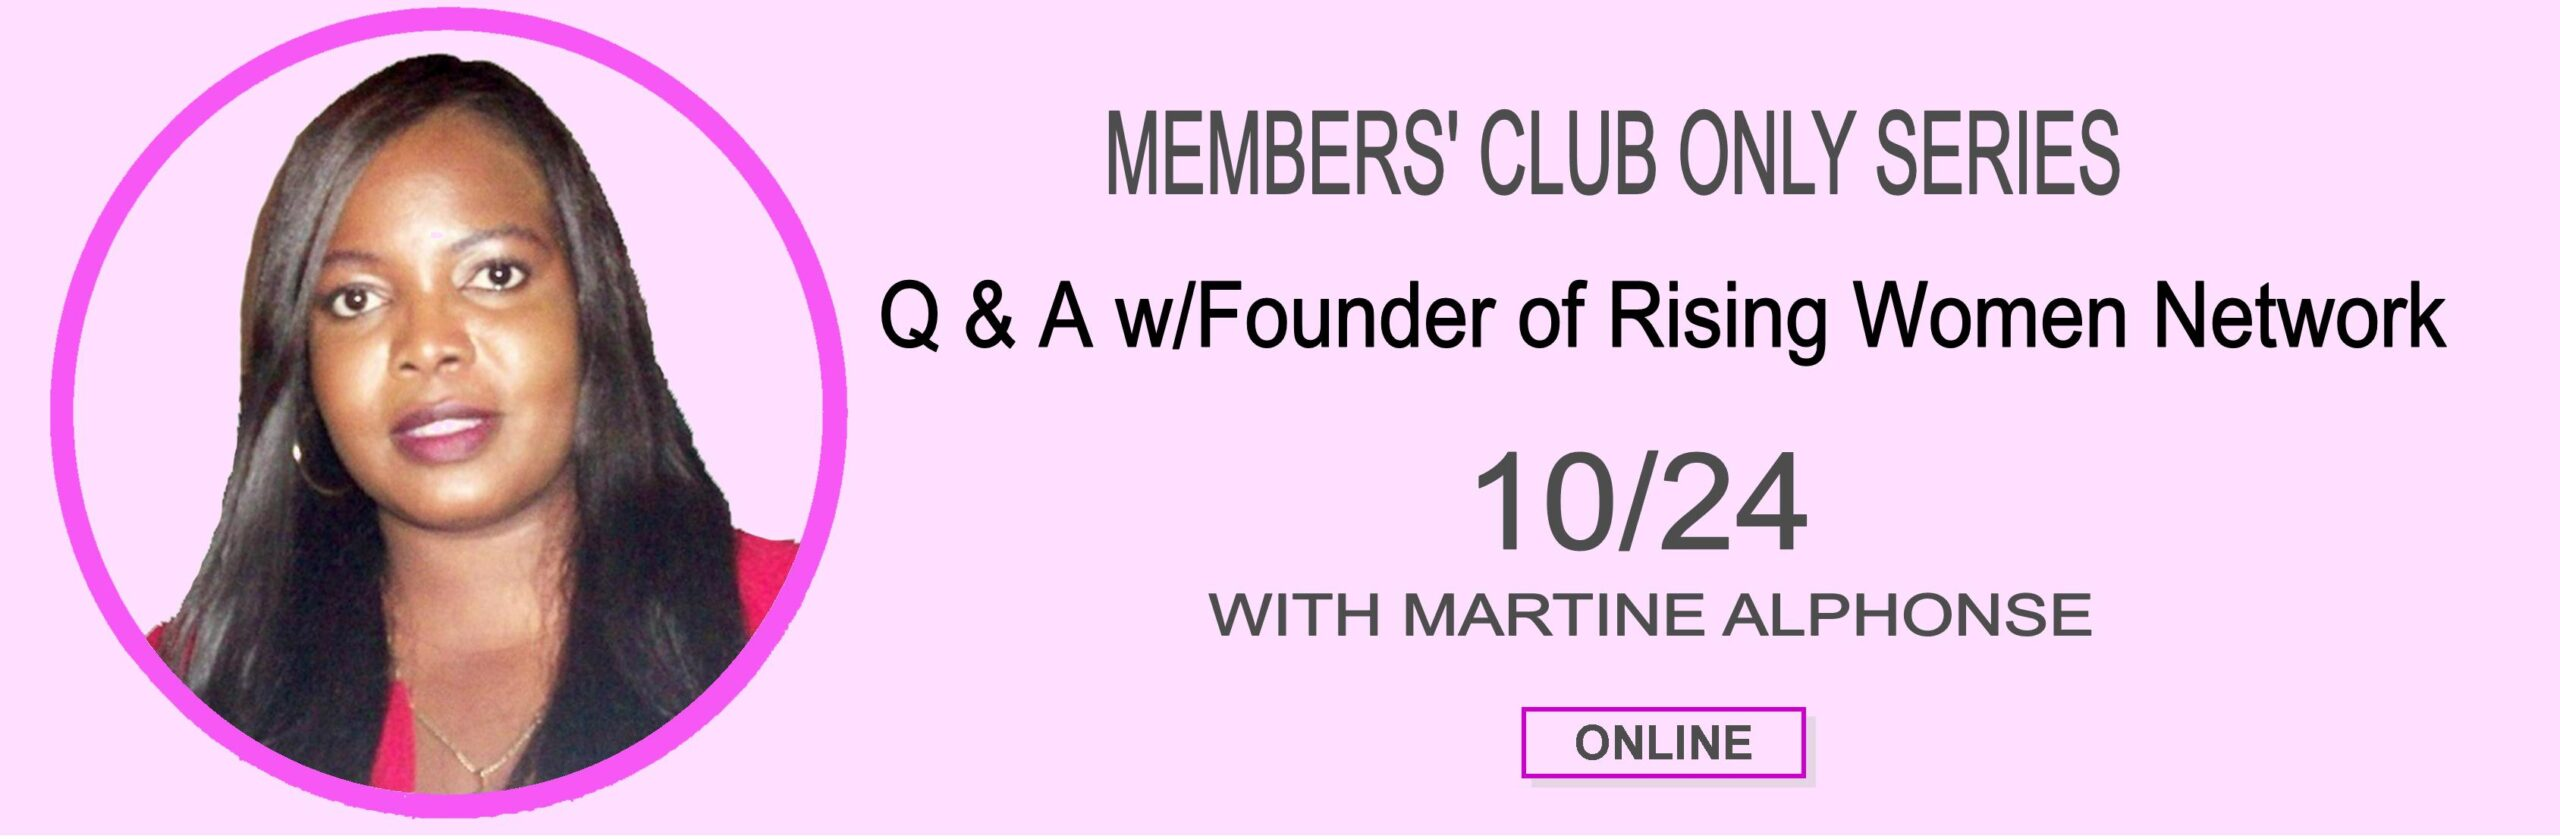 Join Founder of Rising Women Network, Martine Alphonse for our October Members' Club Only Q & A Series. Bring your questions, ask for advice or suggestions.